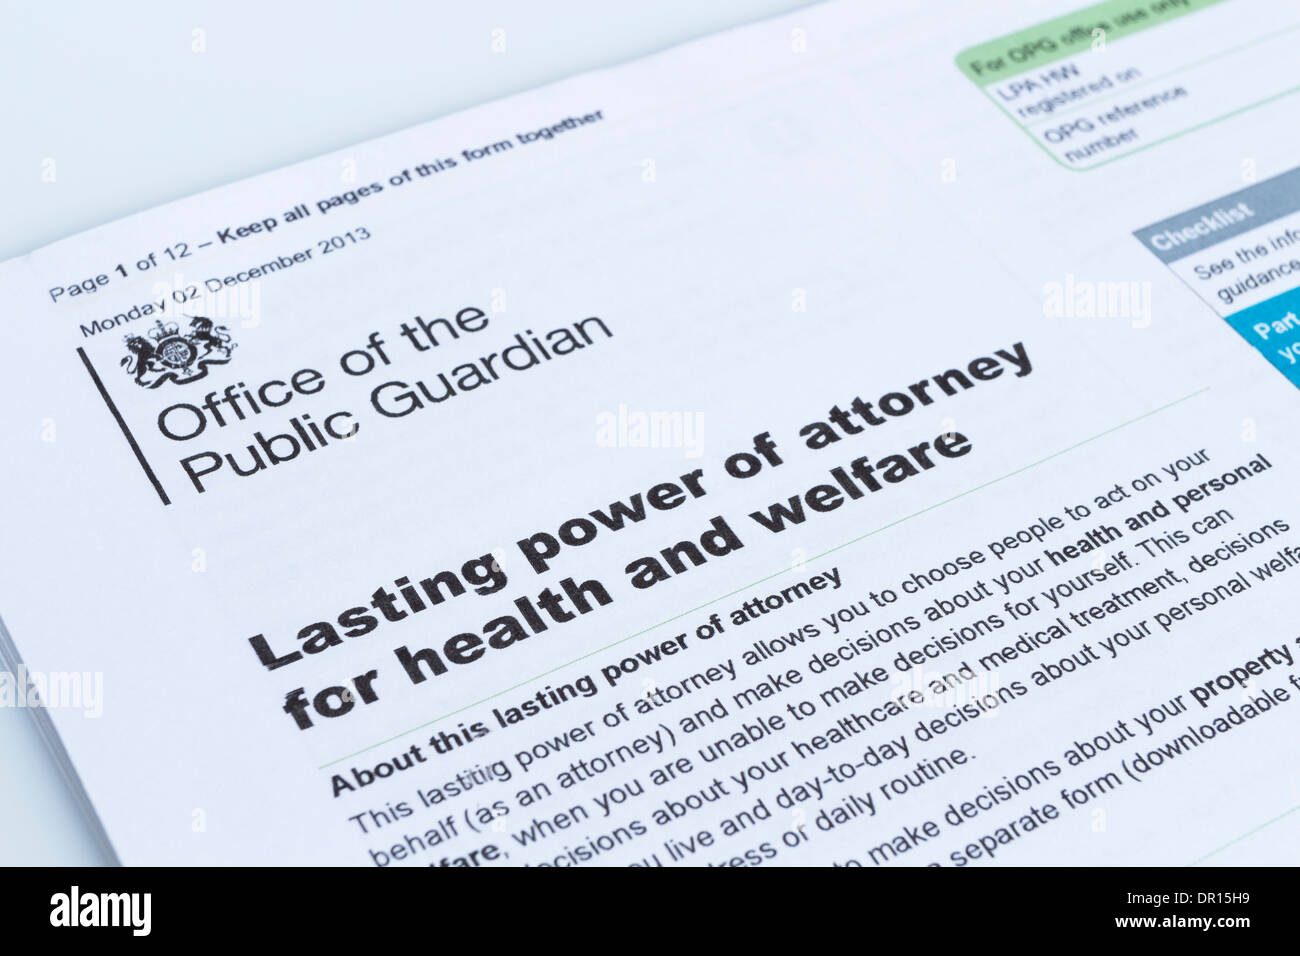 Lasting Power of Attorney for Health and Welfare Form From the Office of the Public Guardian UK - Stock Image